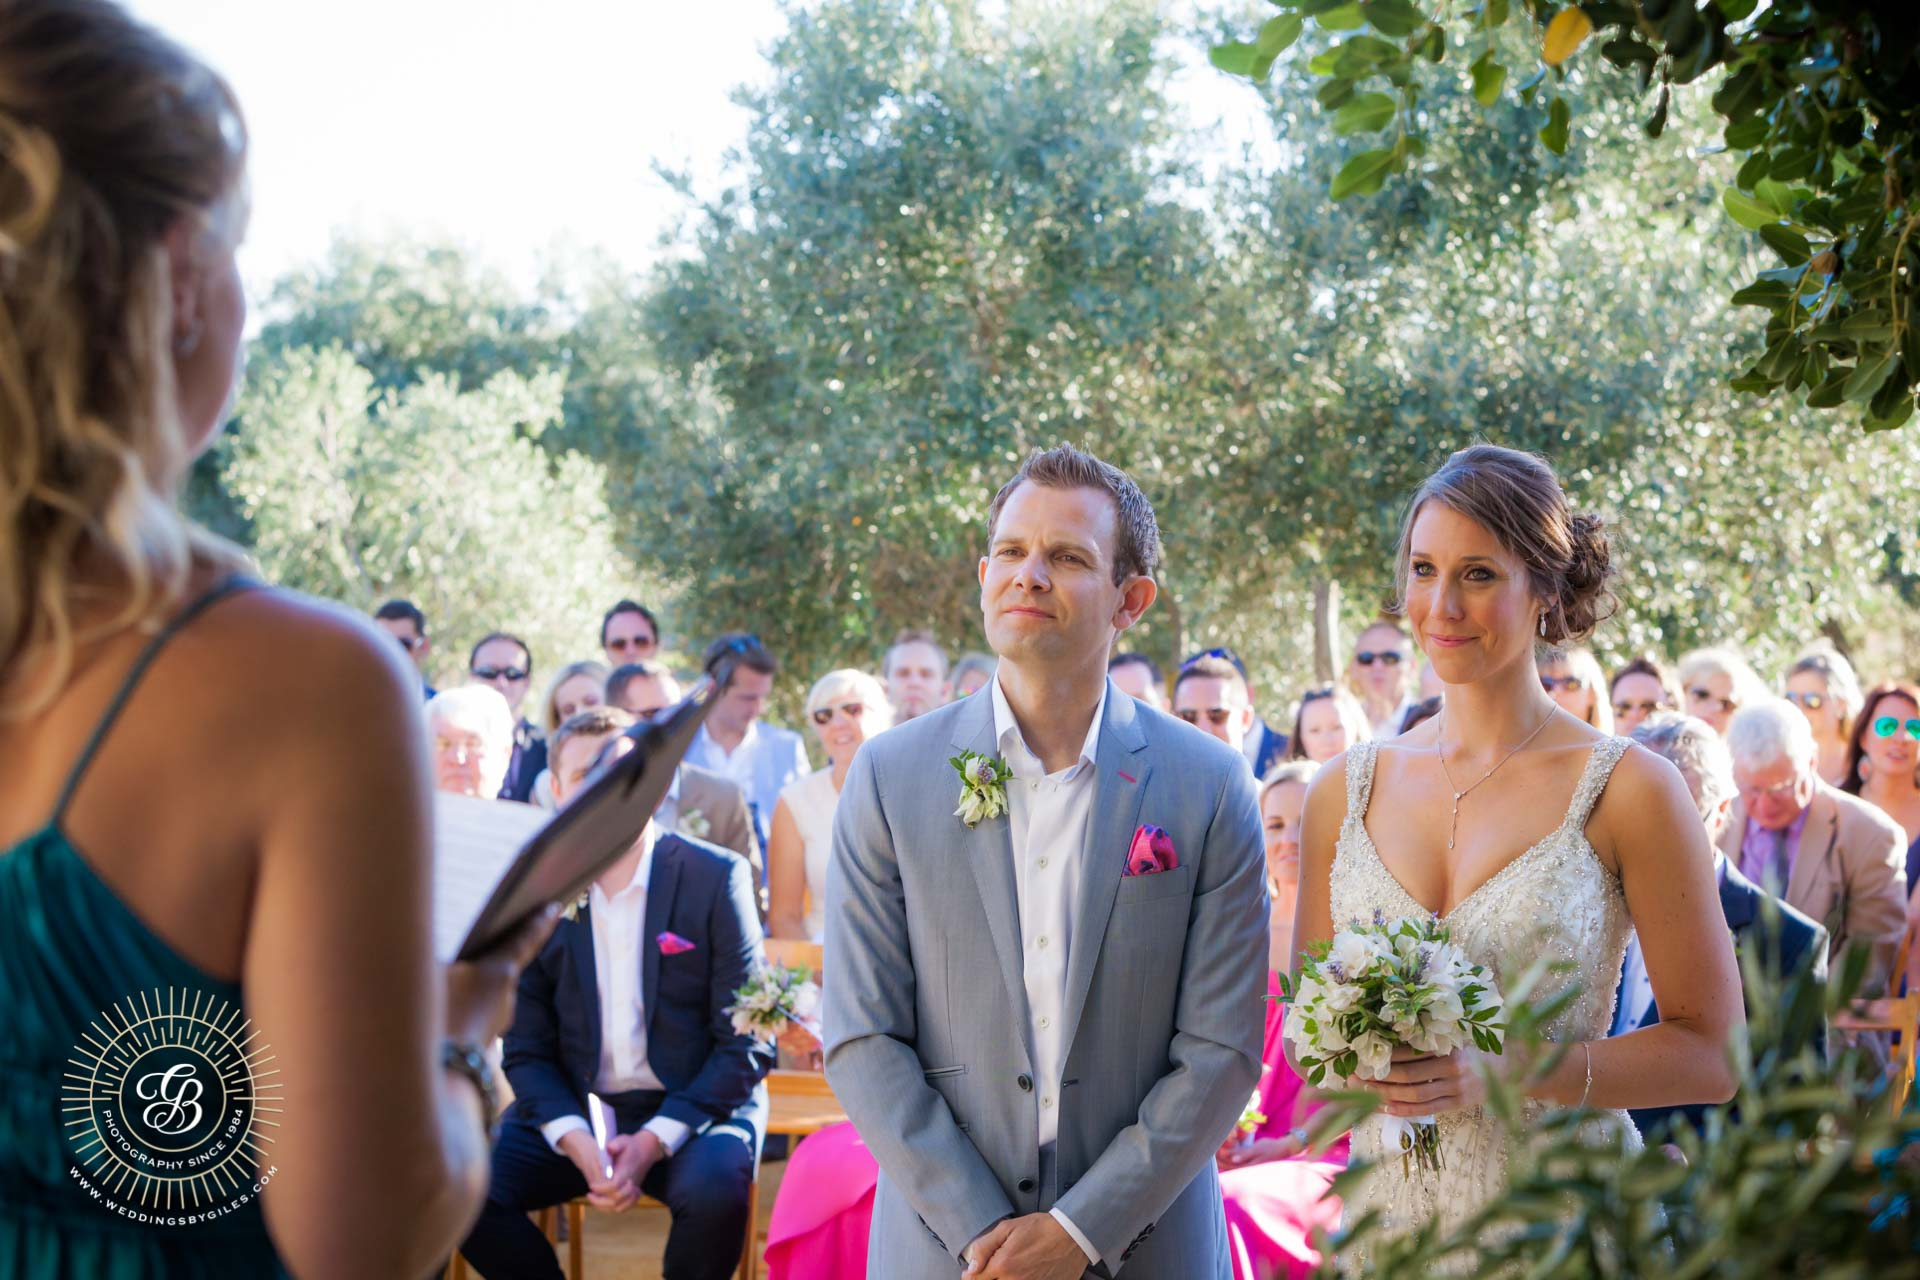 Garden wedding ceremony at the Hacienda de San Rafael